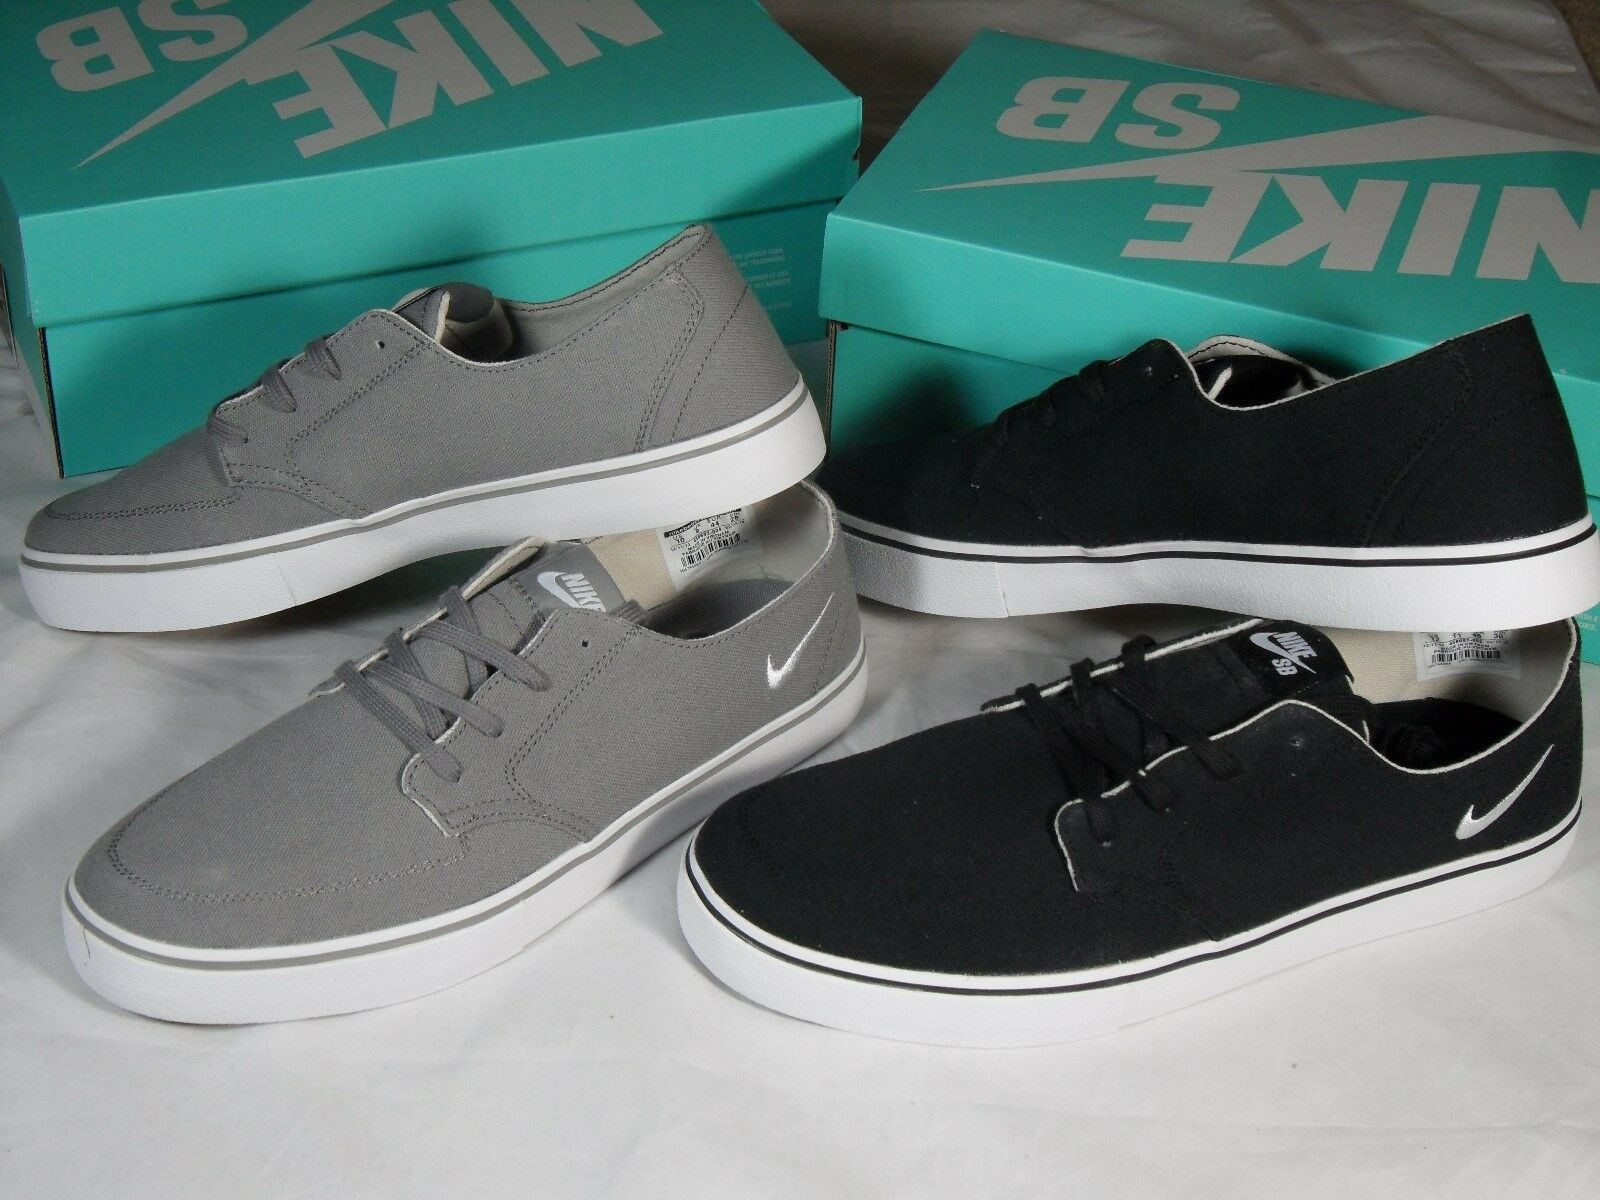 Nike Sb Braata Lr Canvas Gray Shoes